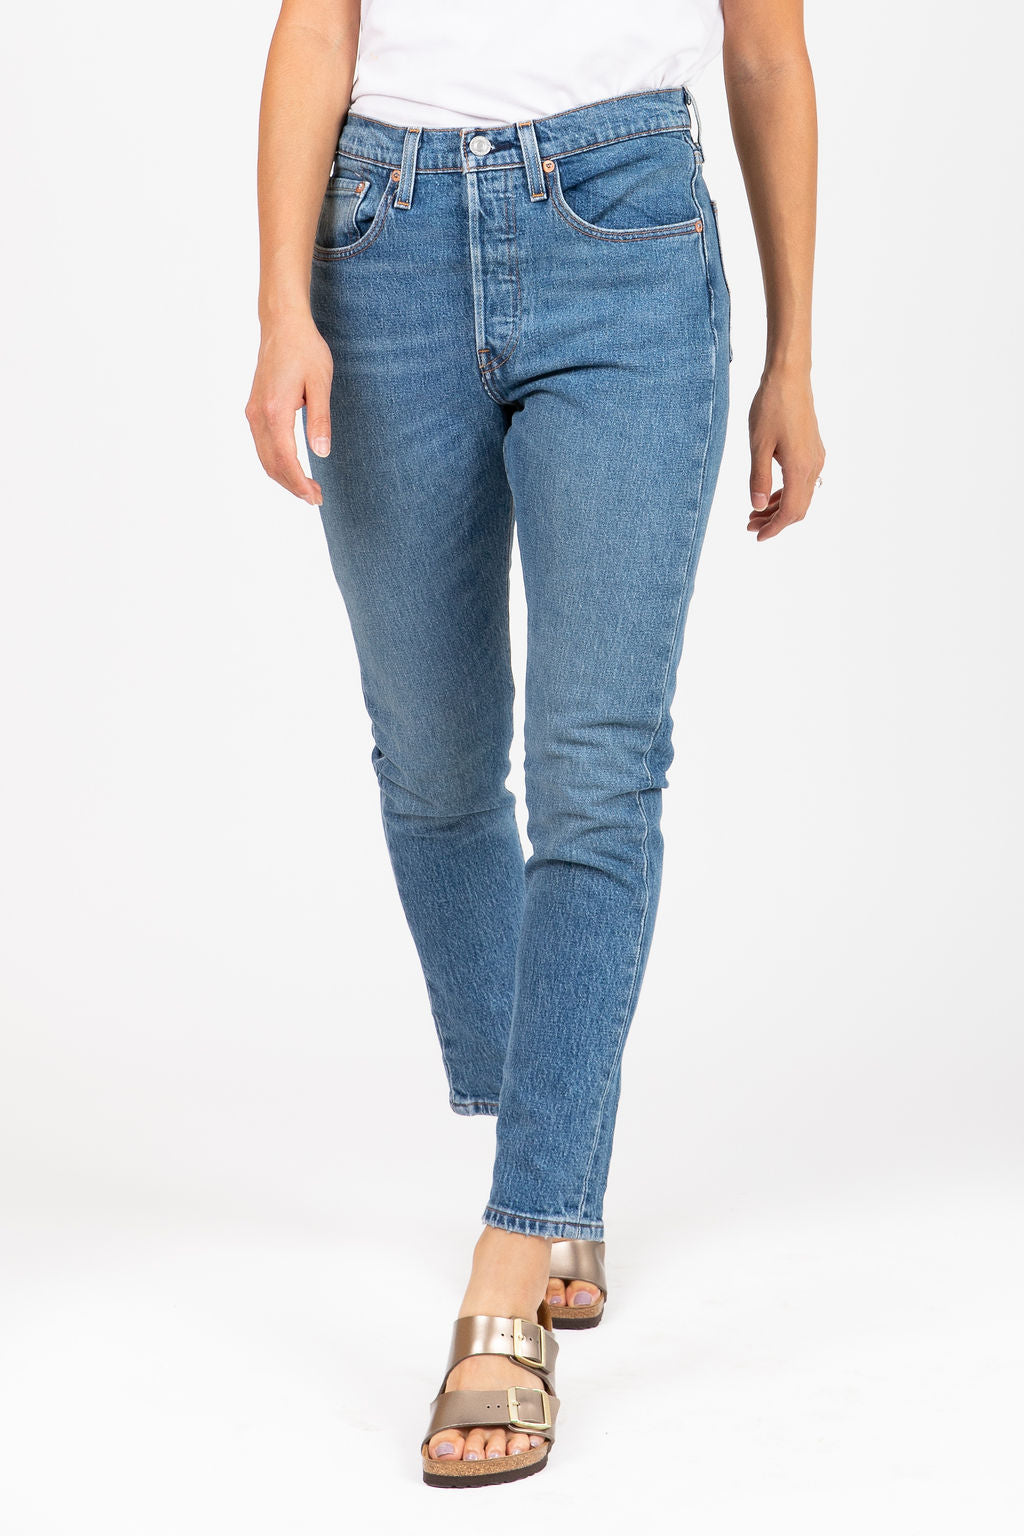 Levi's: 501 Skinny Jeans in Medium Wash Denim